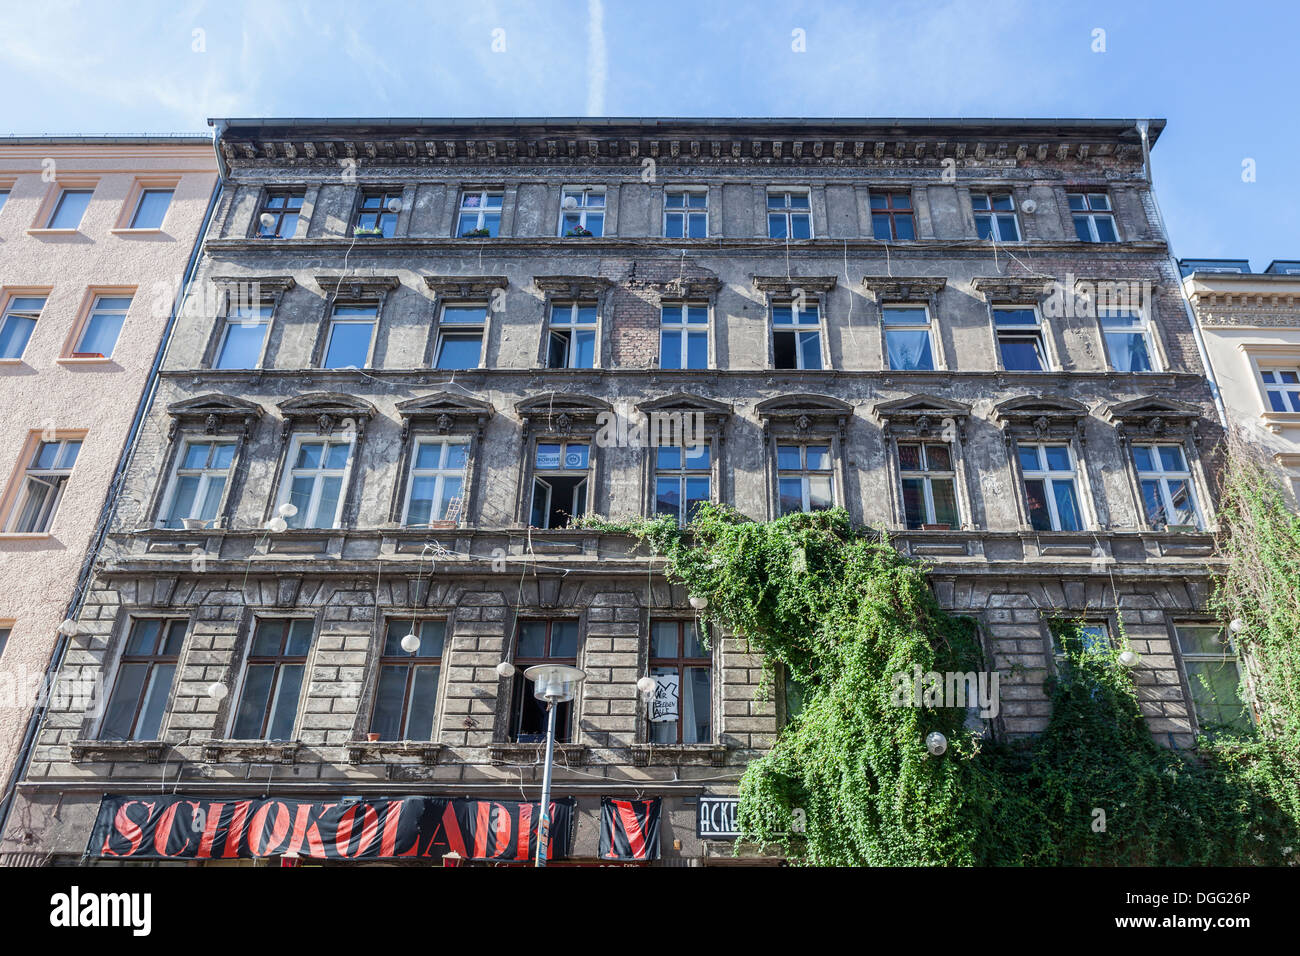 Old decrepit building home to Schokoladen with live music, bands, DJs and artists' studios in Ackerstrasse, Mitte, Stock Photo